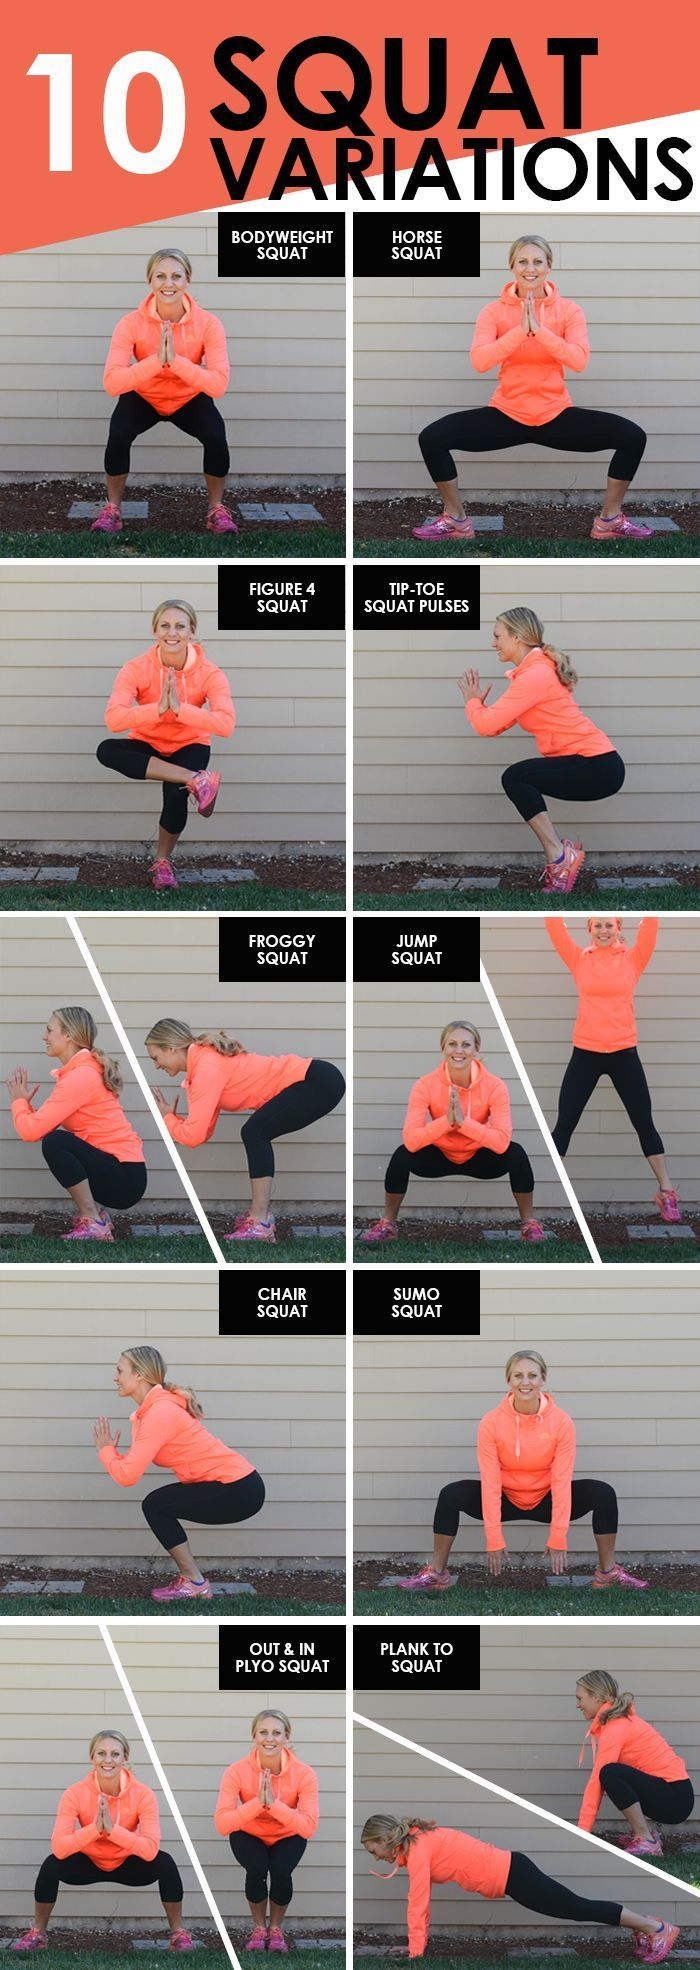 Single-leg squats can help to reduce knee pain                                                                                                                                                                                 More